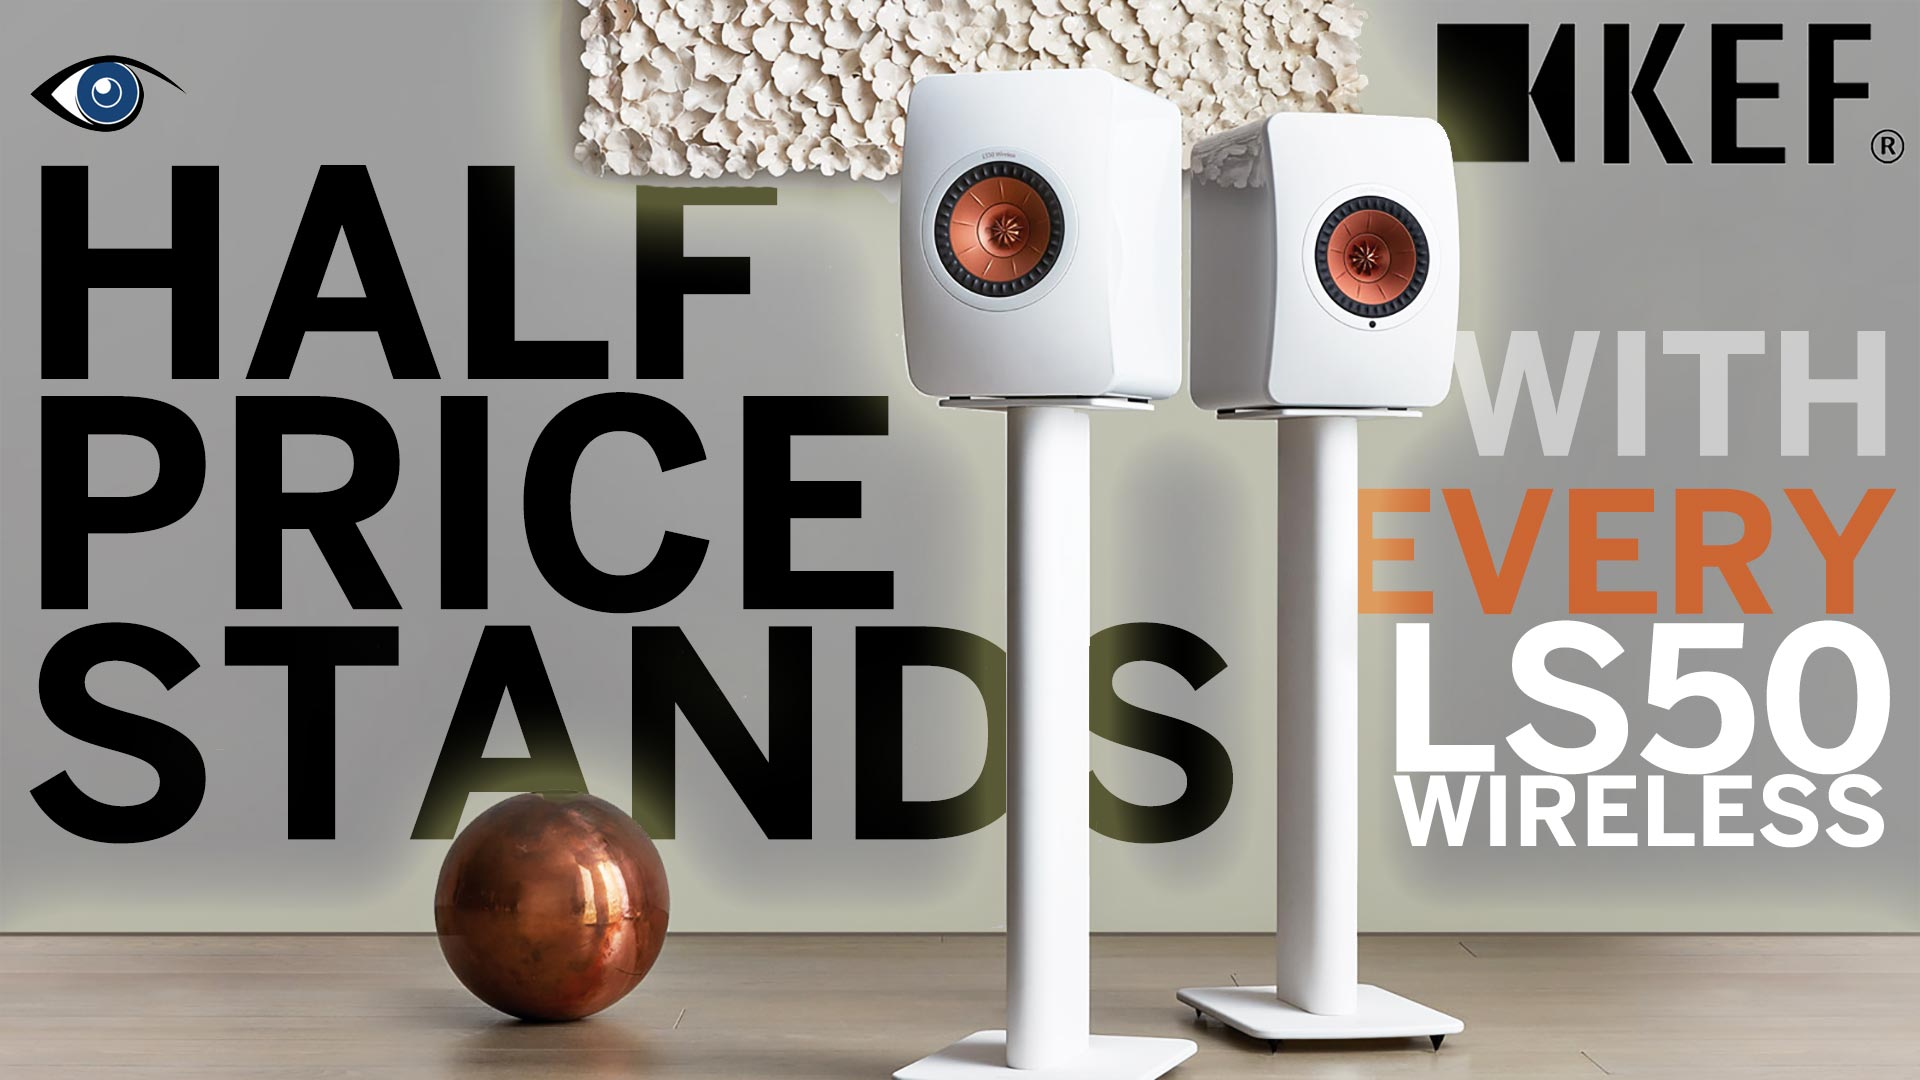 Get 50% Off KEF Performance Stands | Unilet Sound & Vision